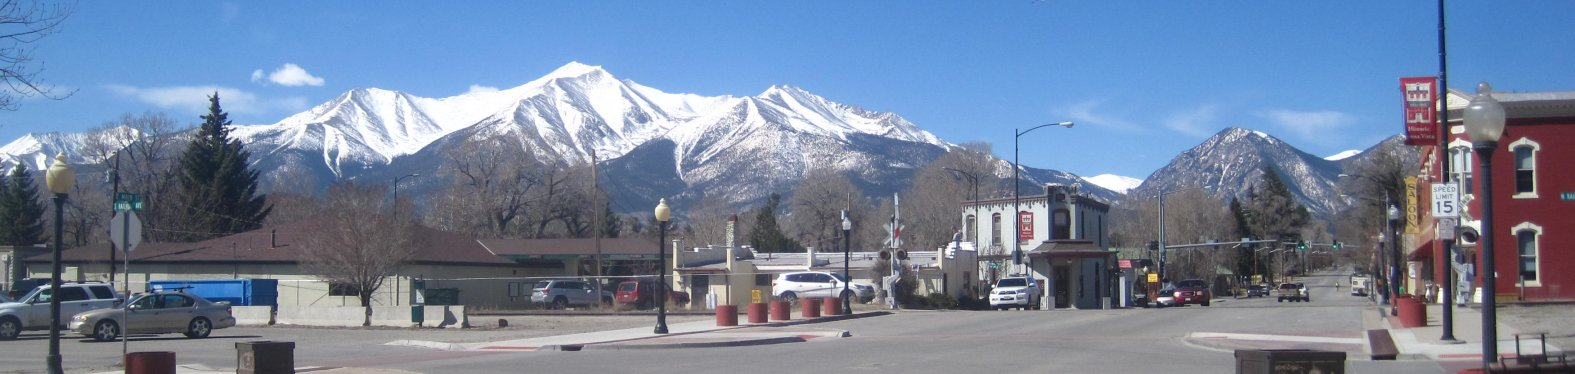 Main Street in Buena Vista, Colorado